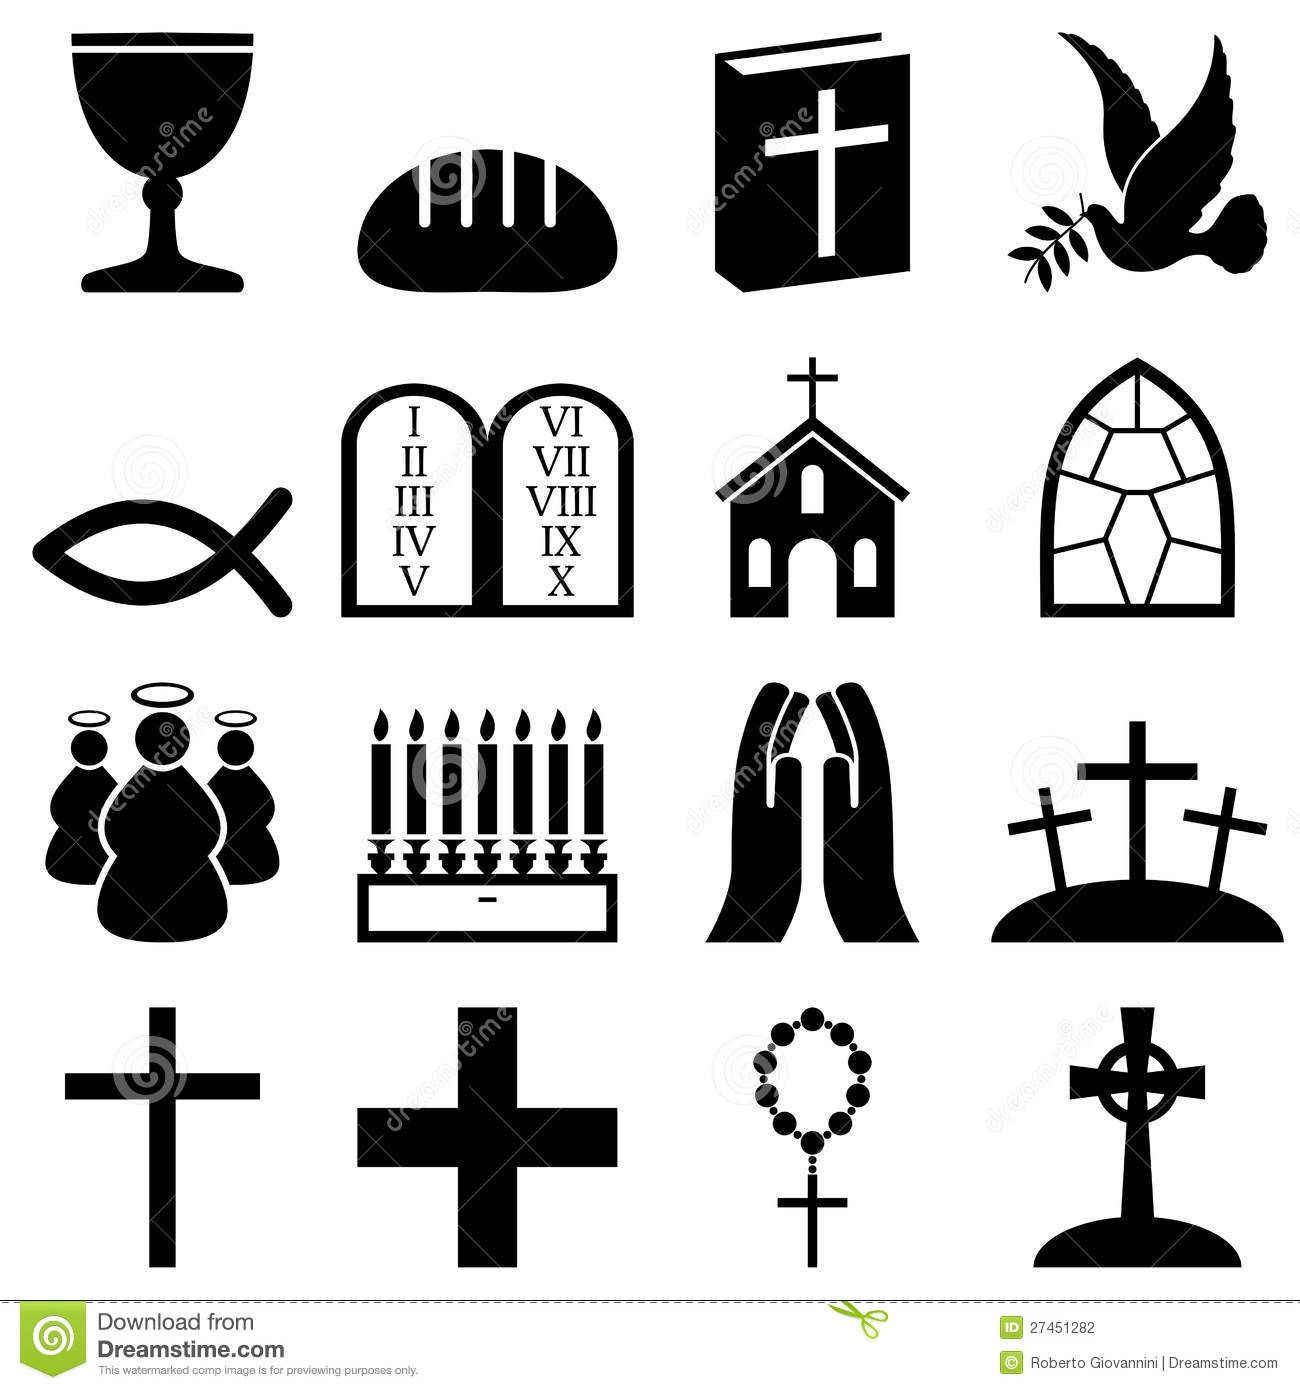 Illustration about Collection of 16 black and white